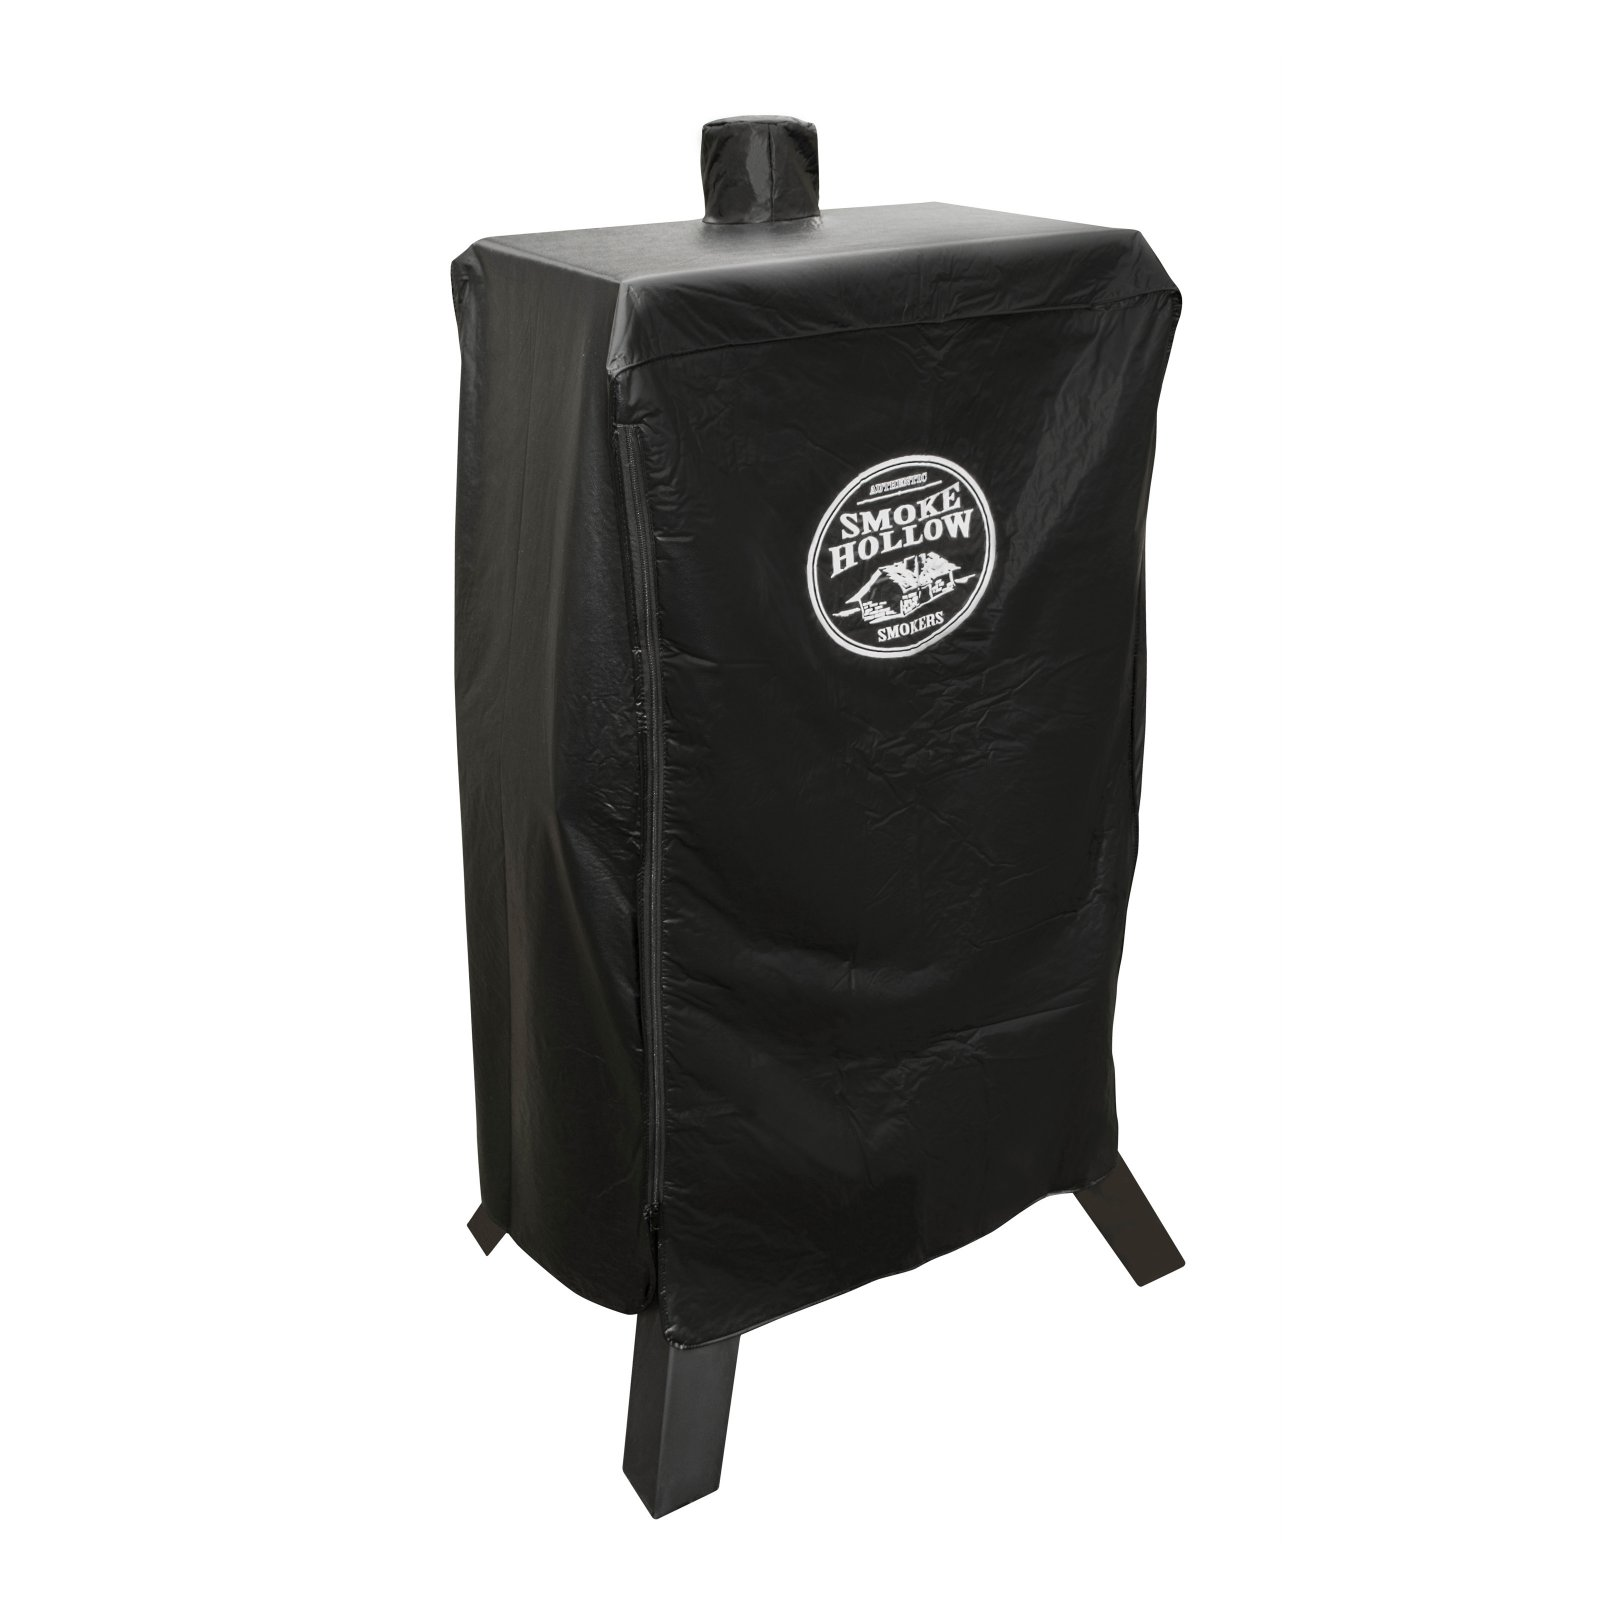 Smoke Hollow SC44 Heavy Duty Water Resistant PVC Smoker Cover